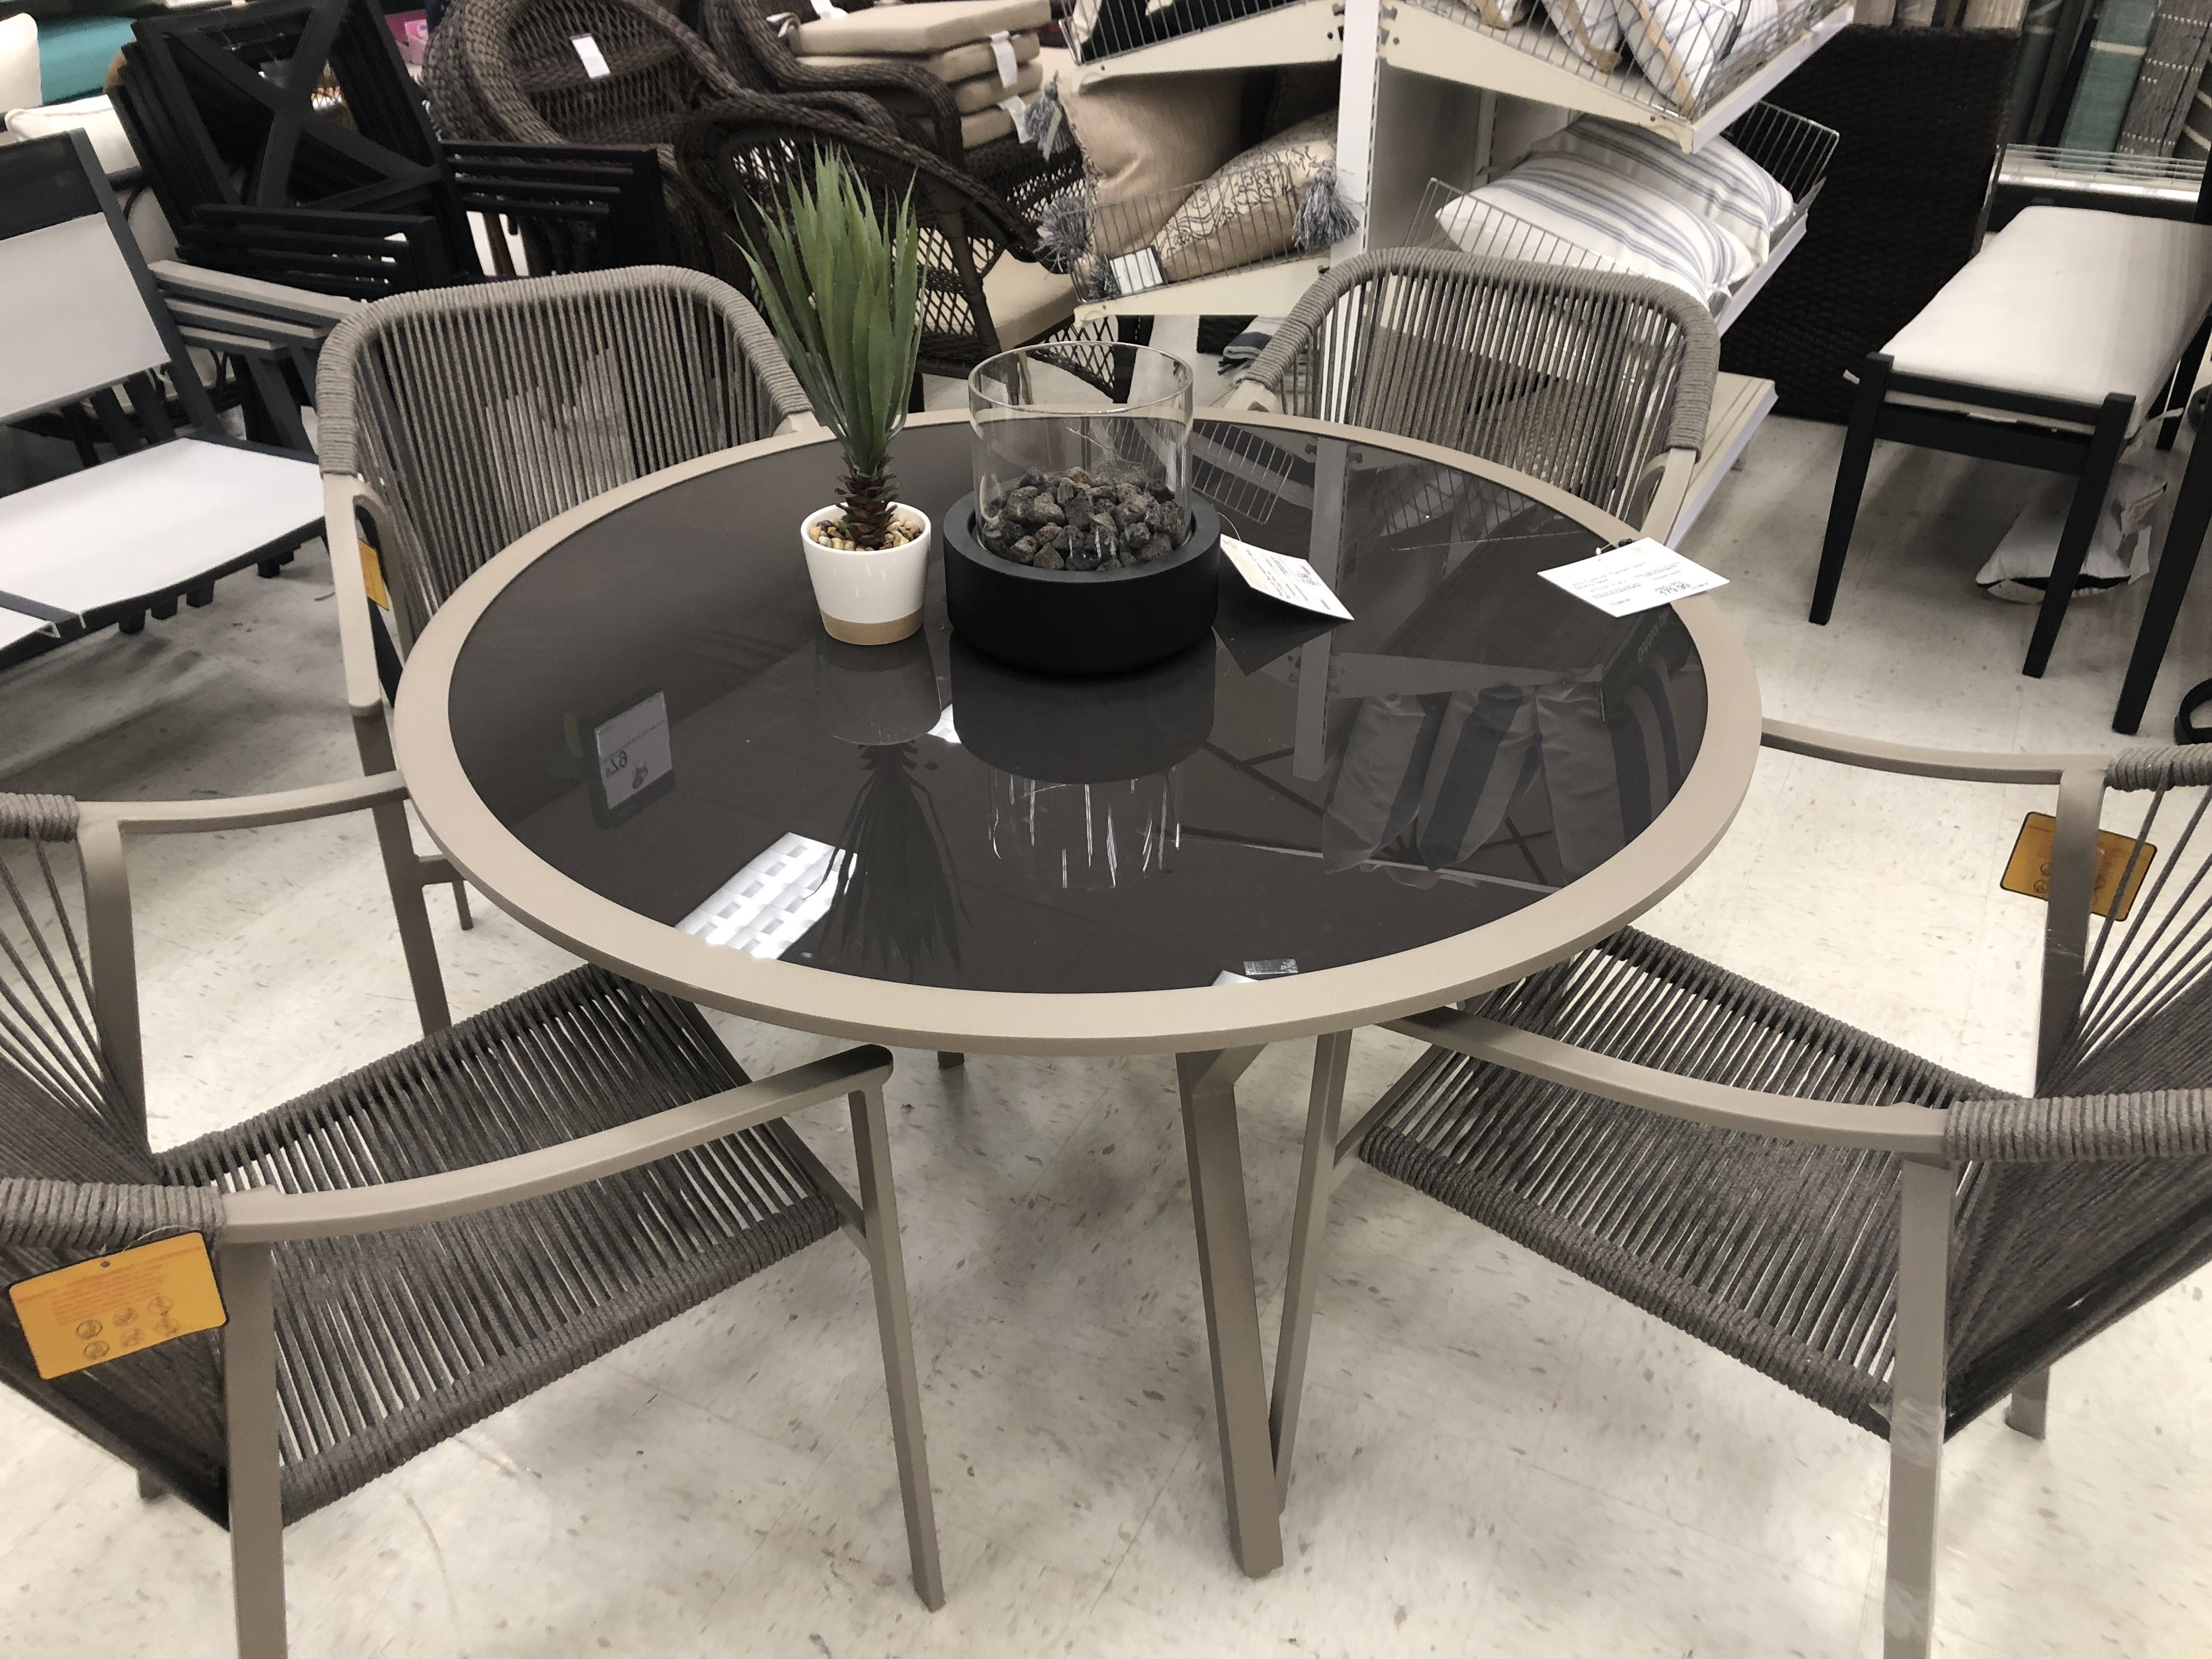 Download Wallpaper Patio Table And Chairs At Target